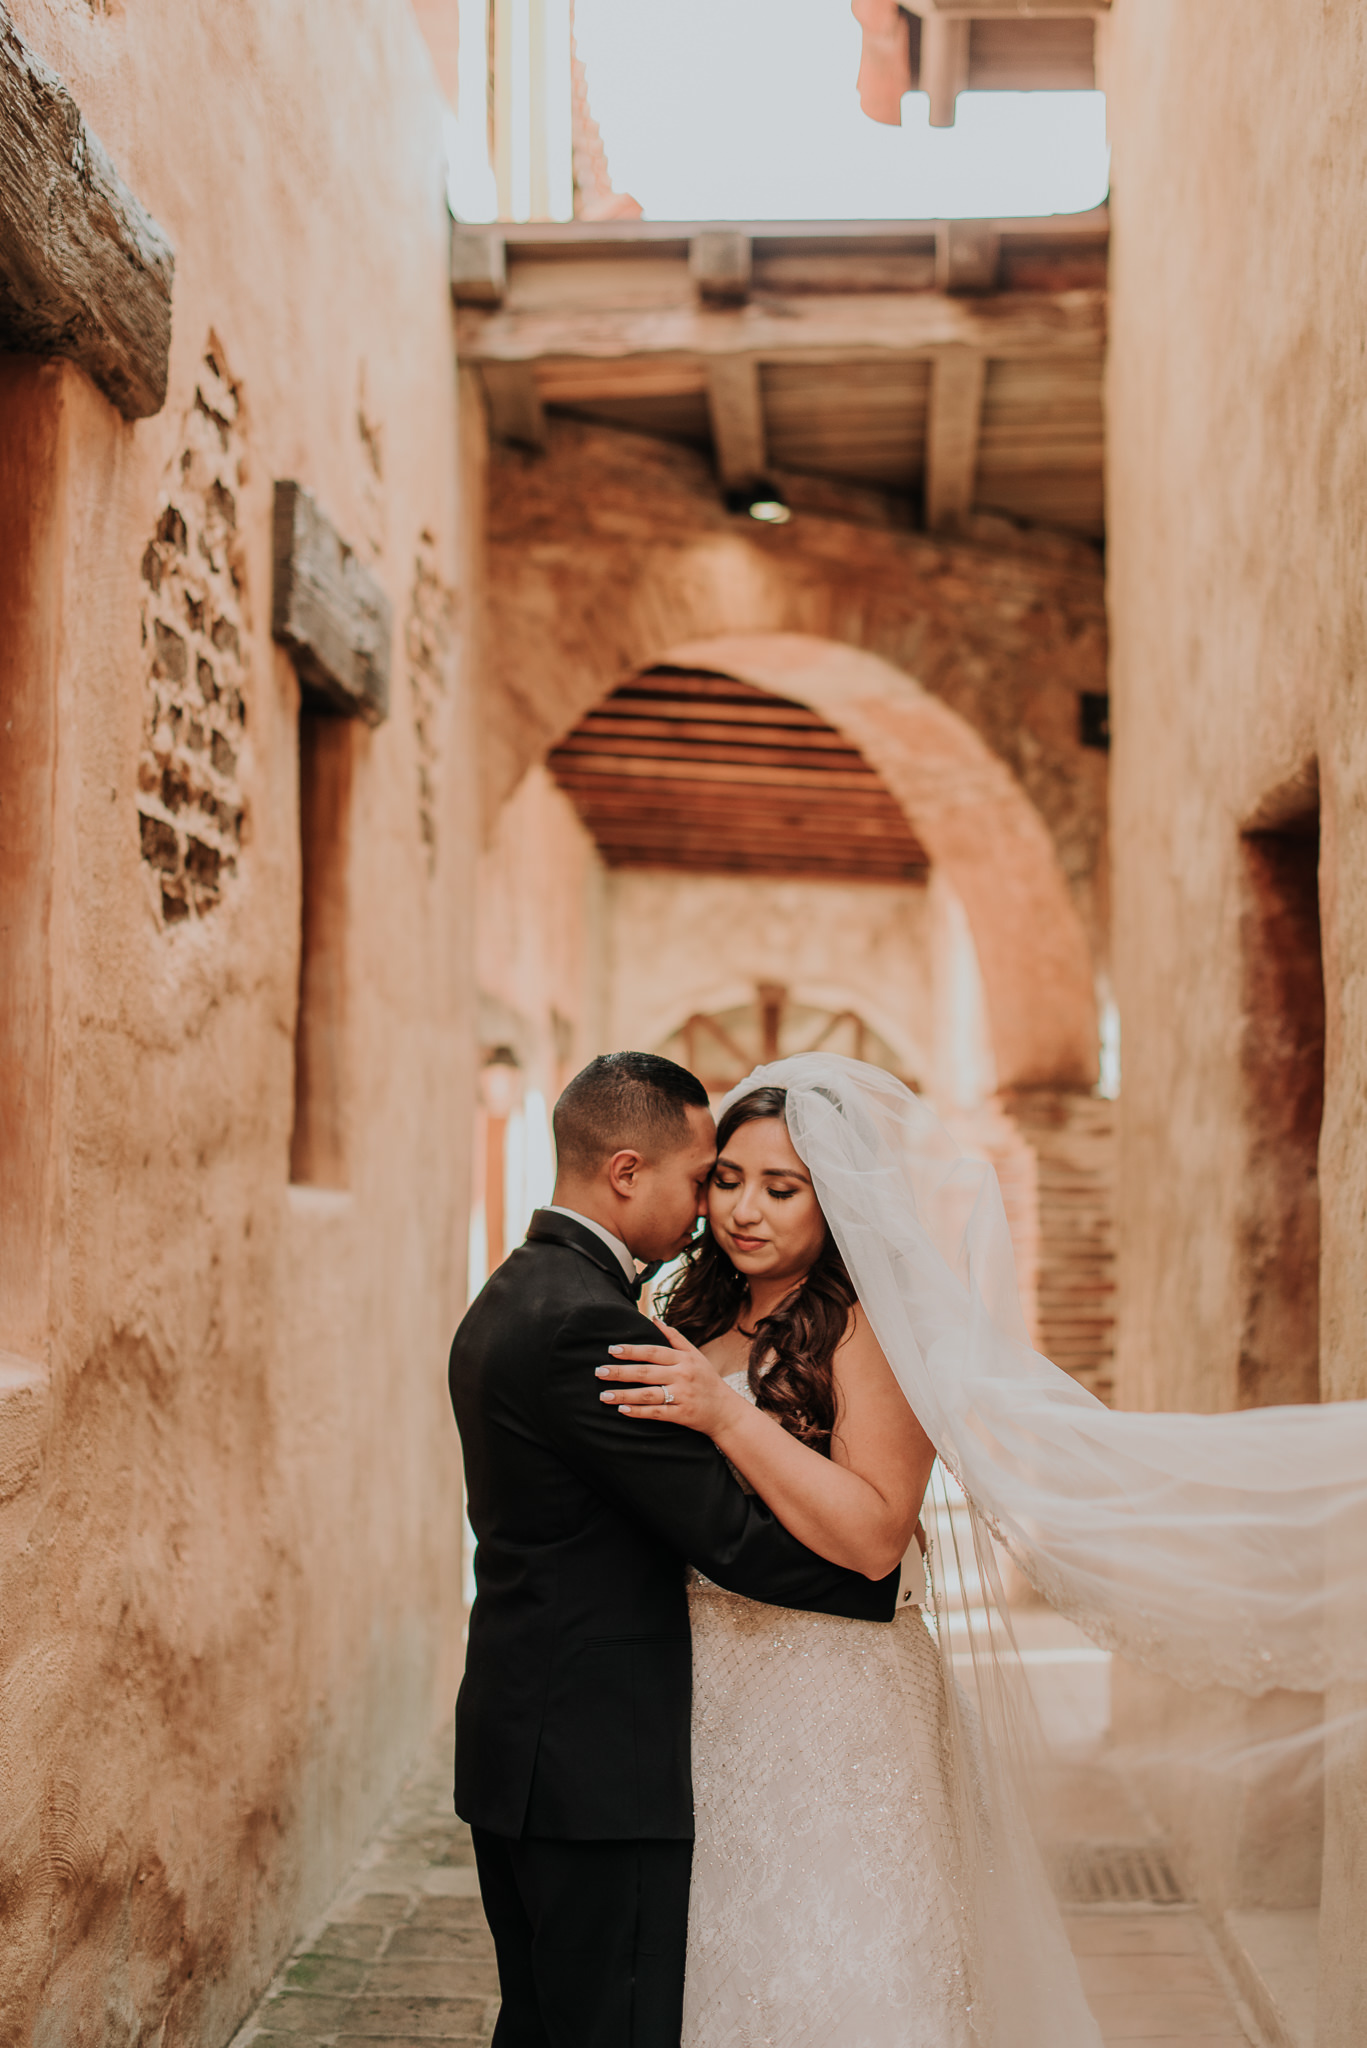 2019-04-05_Brittany_and_Nick_-_Married_-_San_Juan_Capistrano-87.jpg